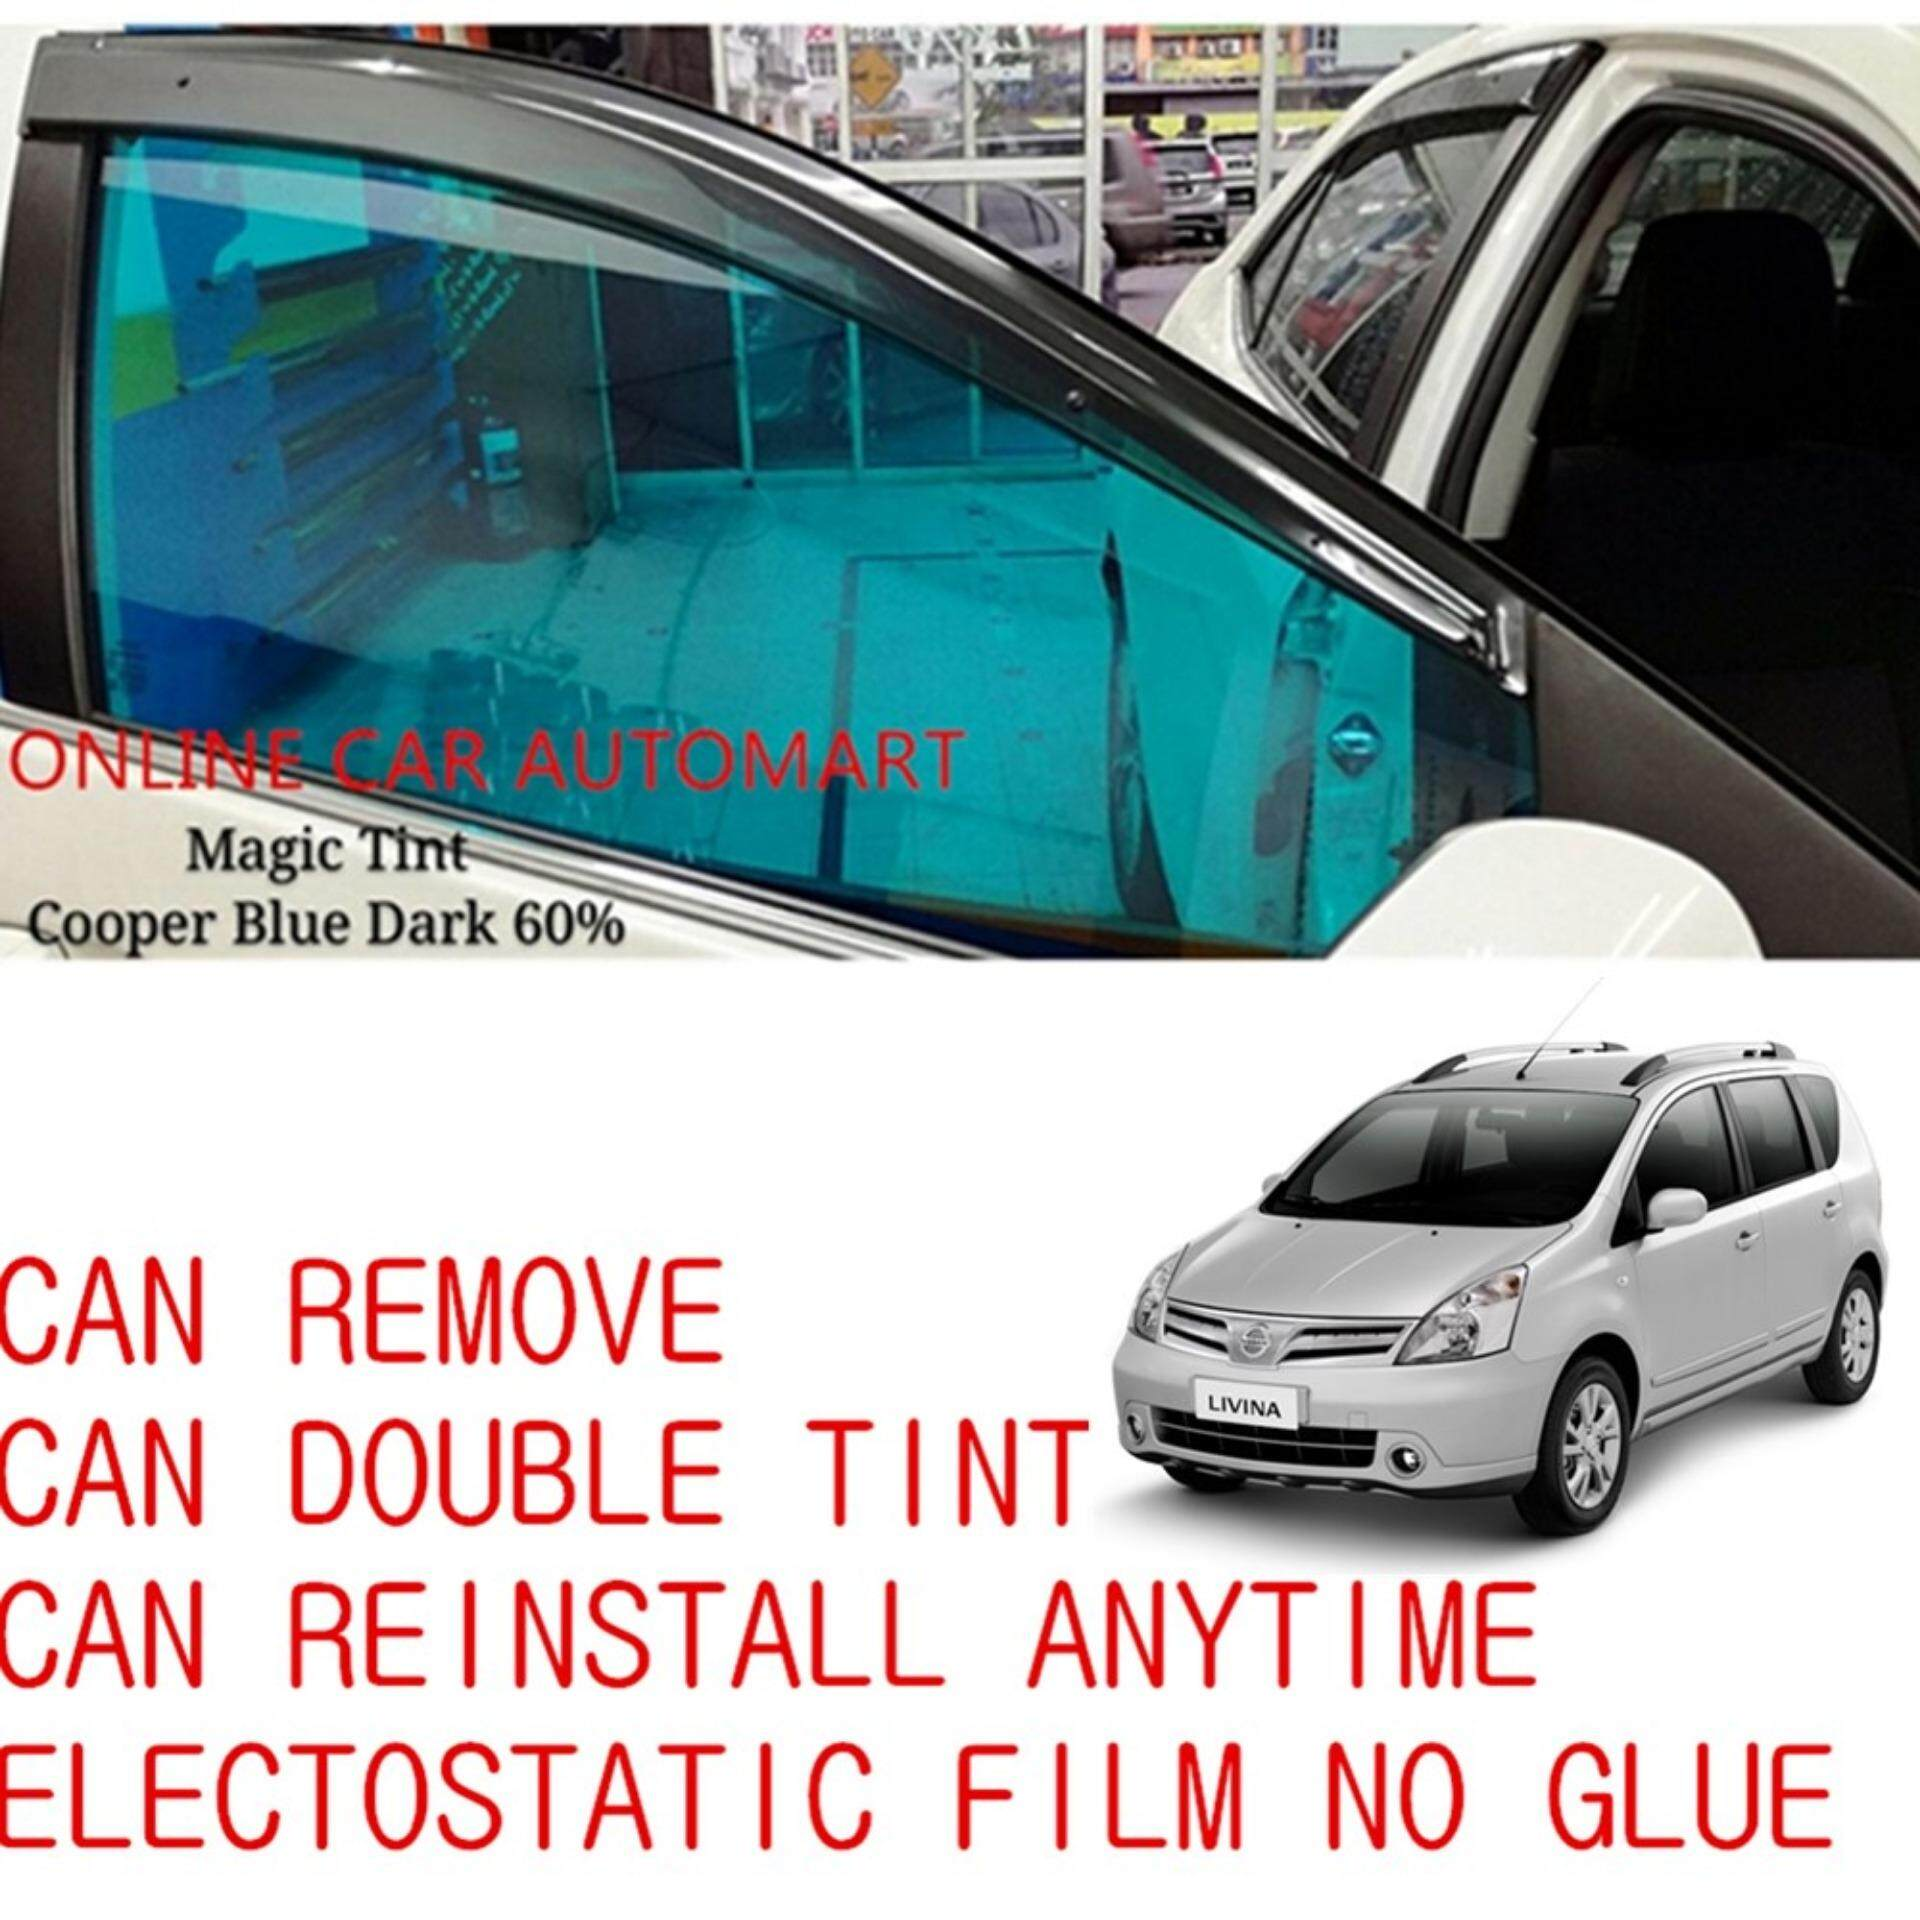 OEM Pre-Cut Shape Magic Tinted Solar Tinted (6 Windows) 60% Cooper Blue Dark For Nissan Grand Livina